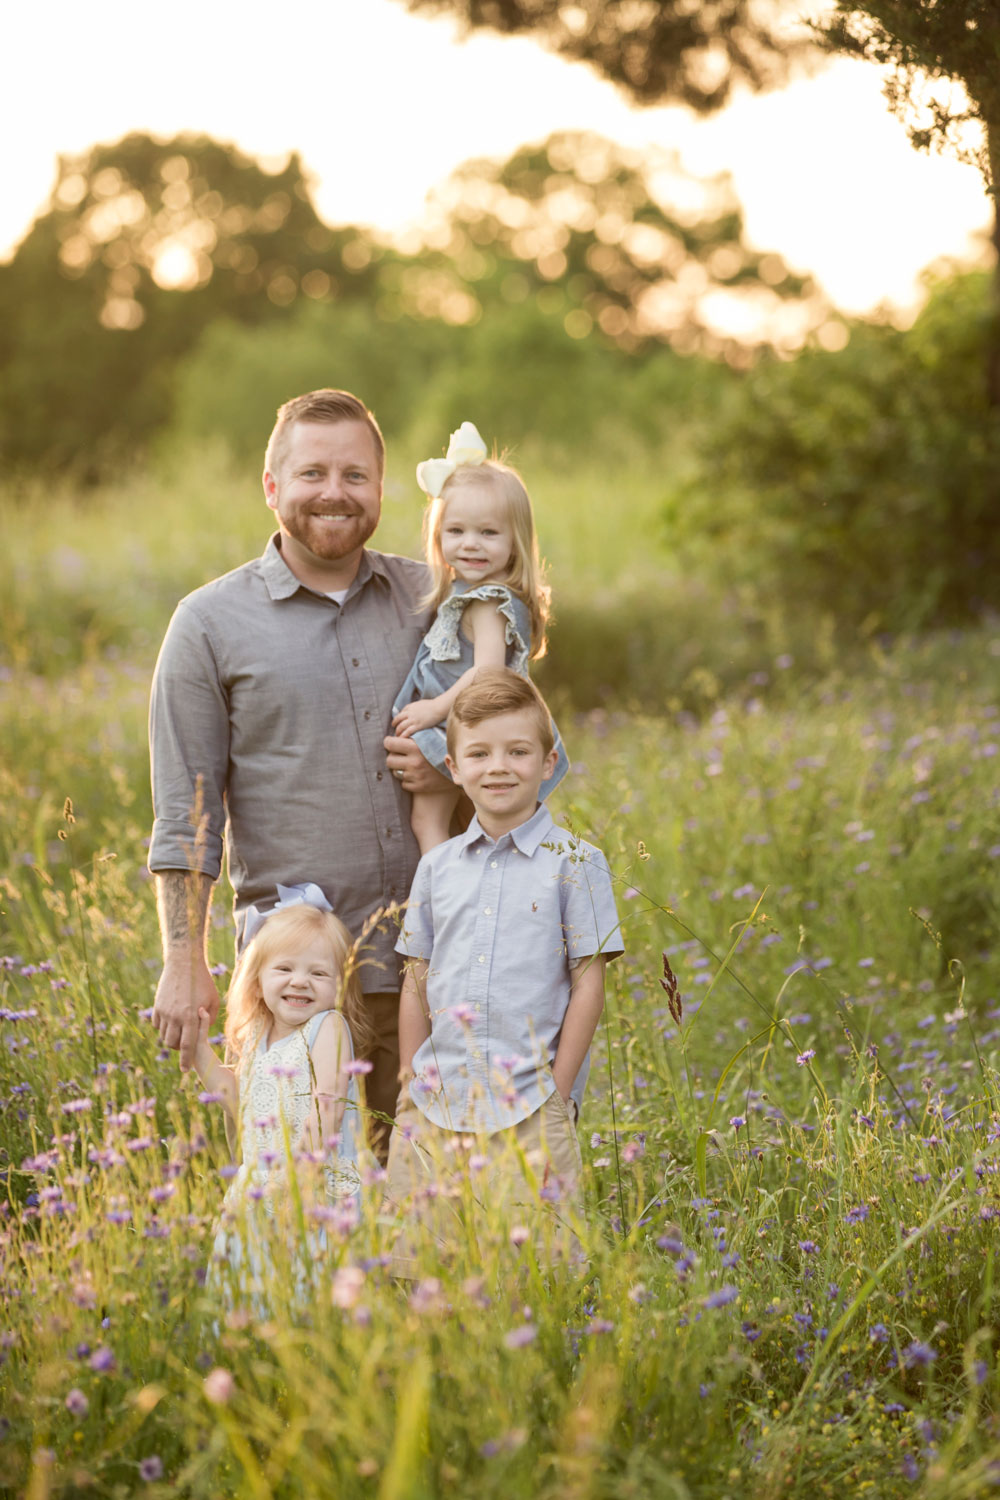 Dad poses with his three kiddos in Maryville field of flowers.